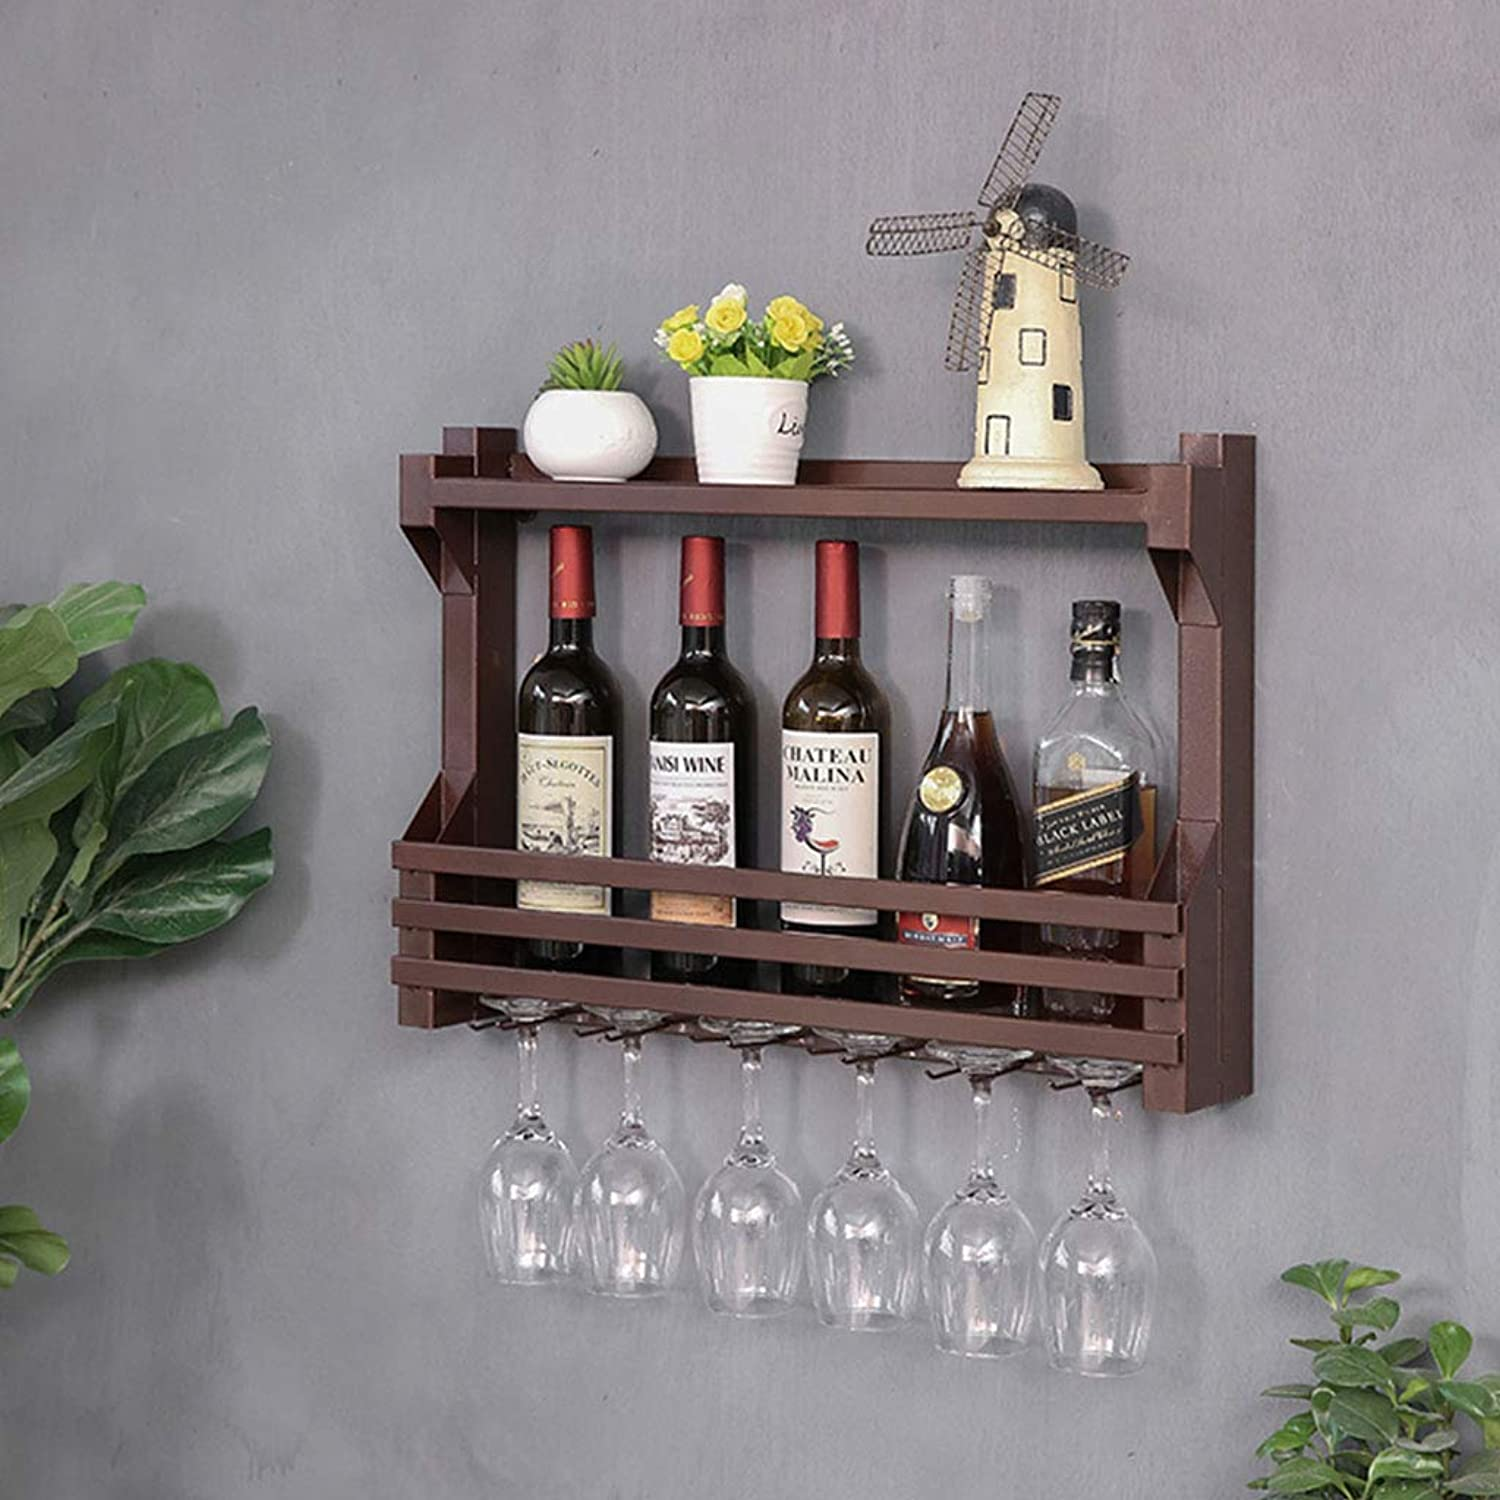 Red Wine Shelf Modern Minimalist Restaurant Hanging Wine Rack Wine Cabinet Living Room Wall Decorative Creative Wall Hanging Wine Rack Wine Cabinets (color   C, Size   60CM)